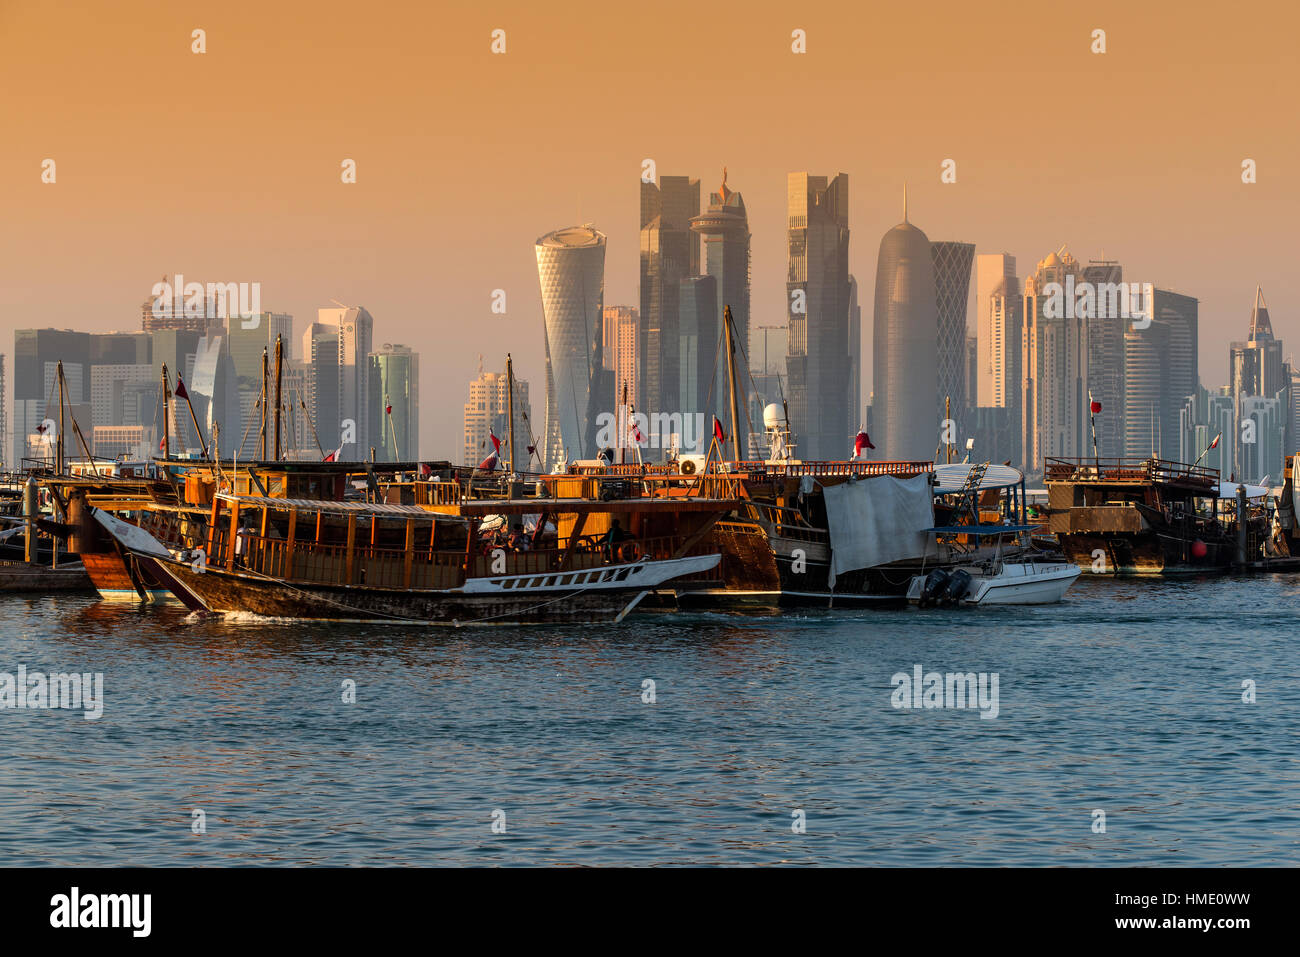 Dhow traditional sailing vessel with the financial area skyline behind, Doha, Qatar - Stock Image